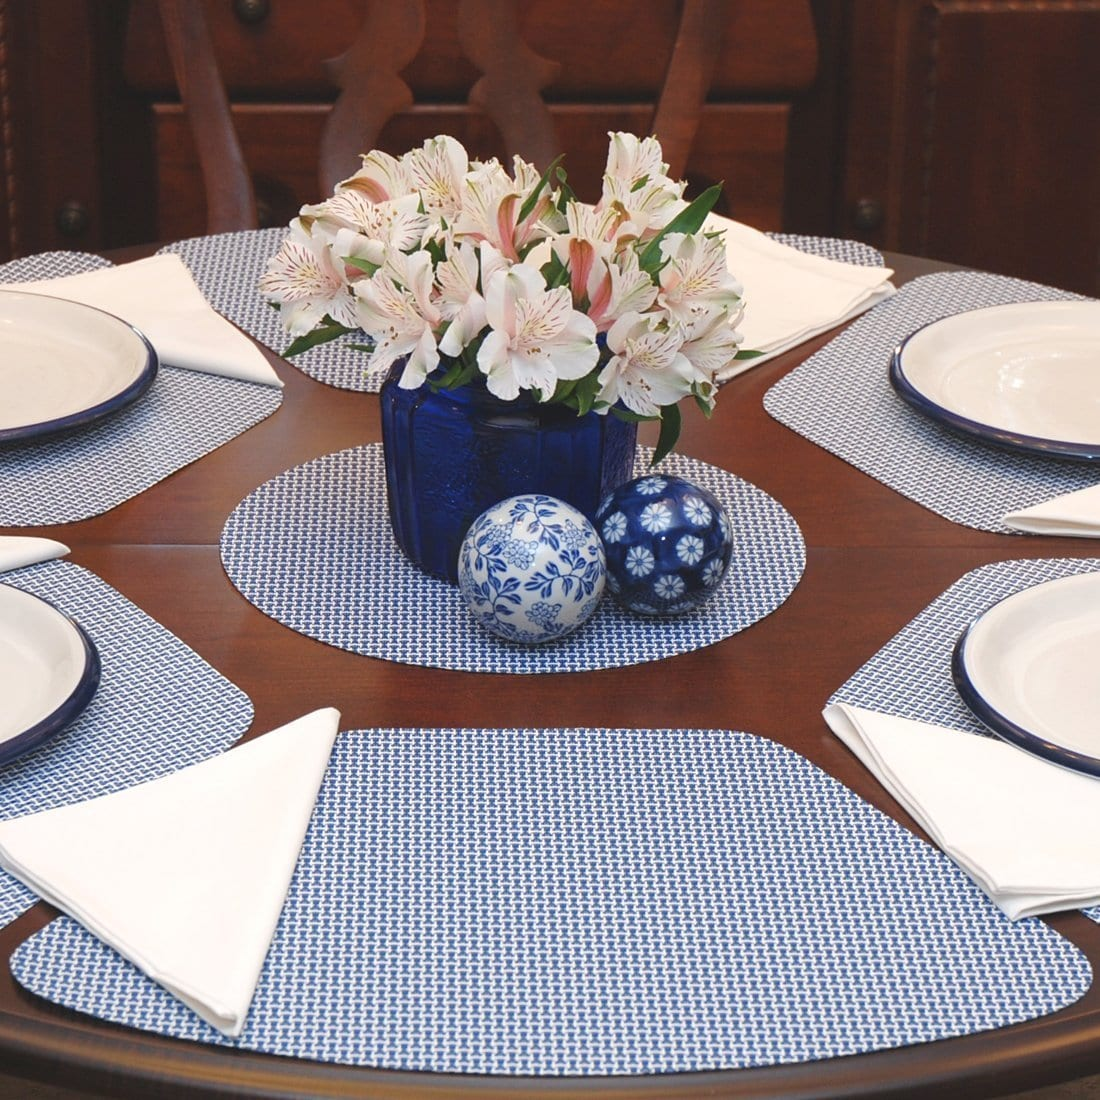 Wedge Shaped Placemats By Sweet Pea Linens, Placemats For Round Tables Wedge Pattern